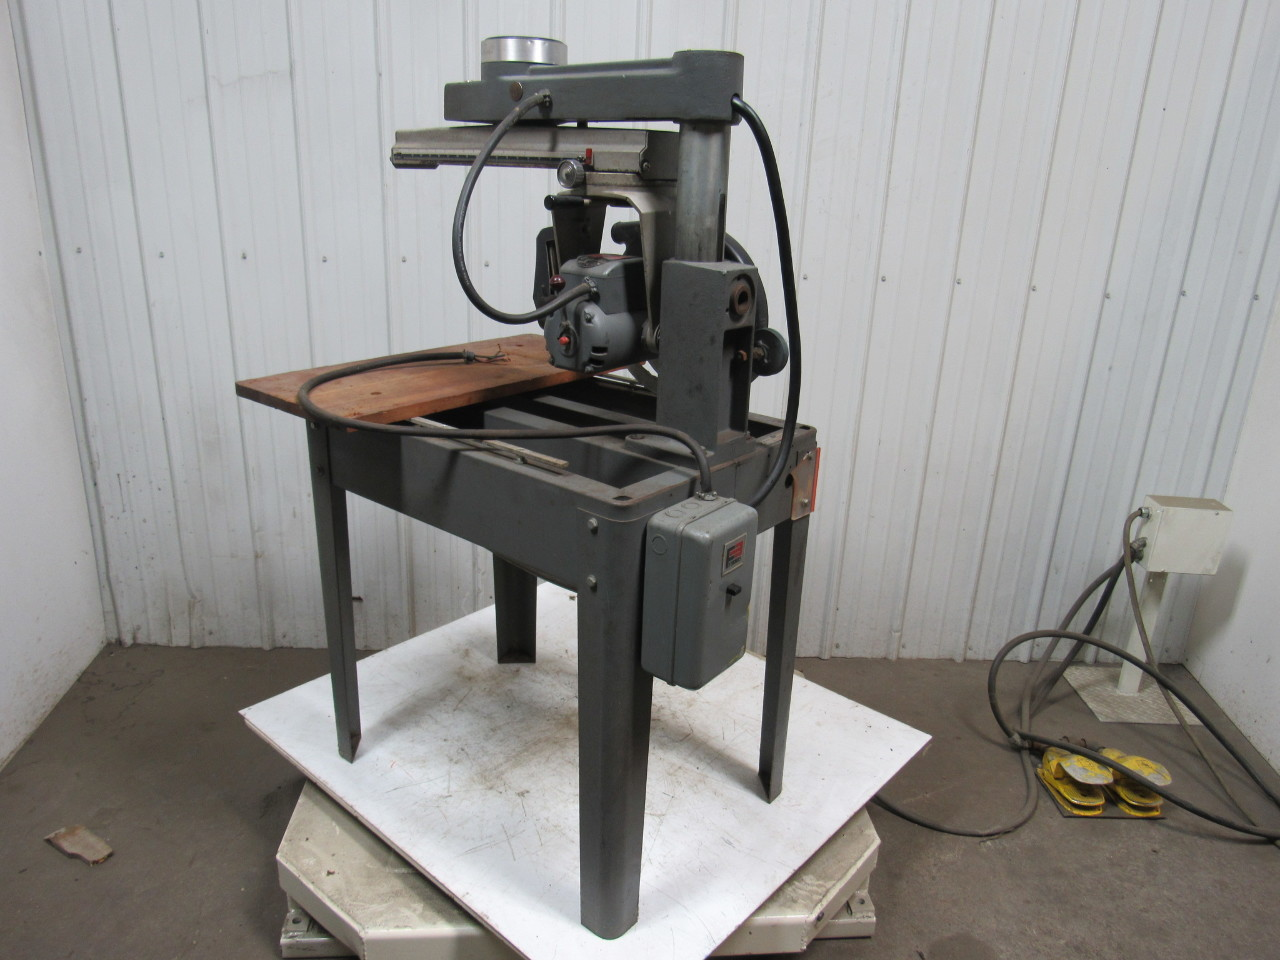 Rockwell Delta 33 694 10 Plus Radial Arm Saw 12 W 12 Stroke 2hp W Stand Ebay